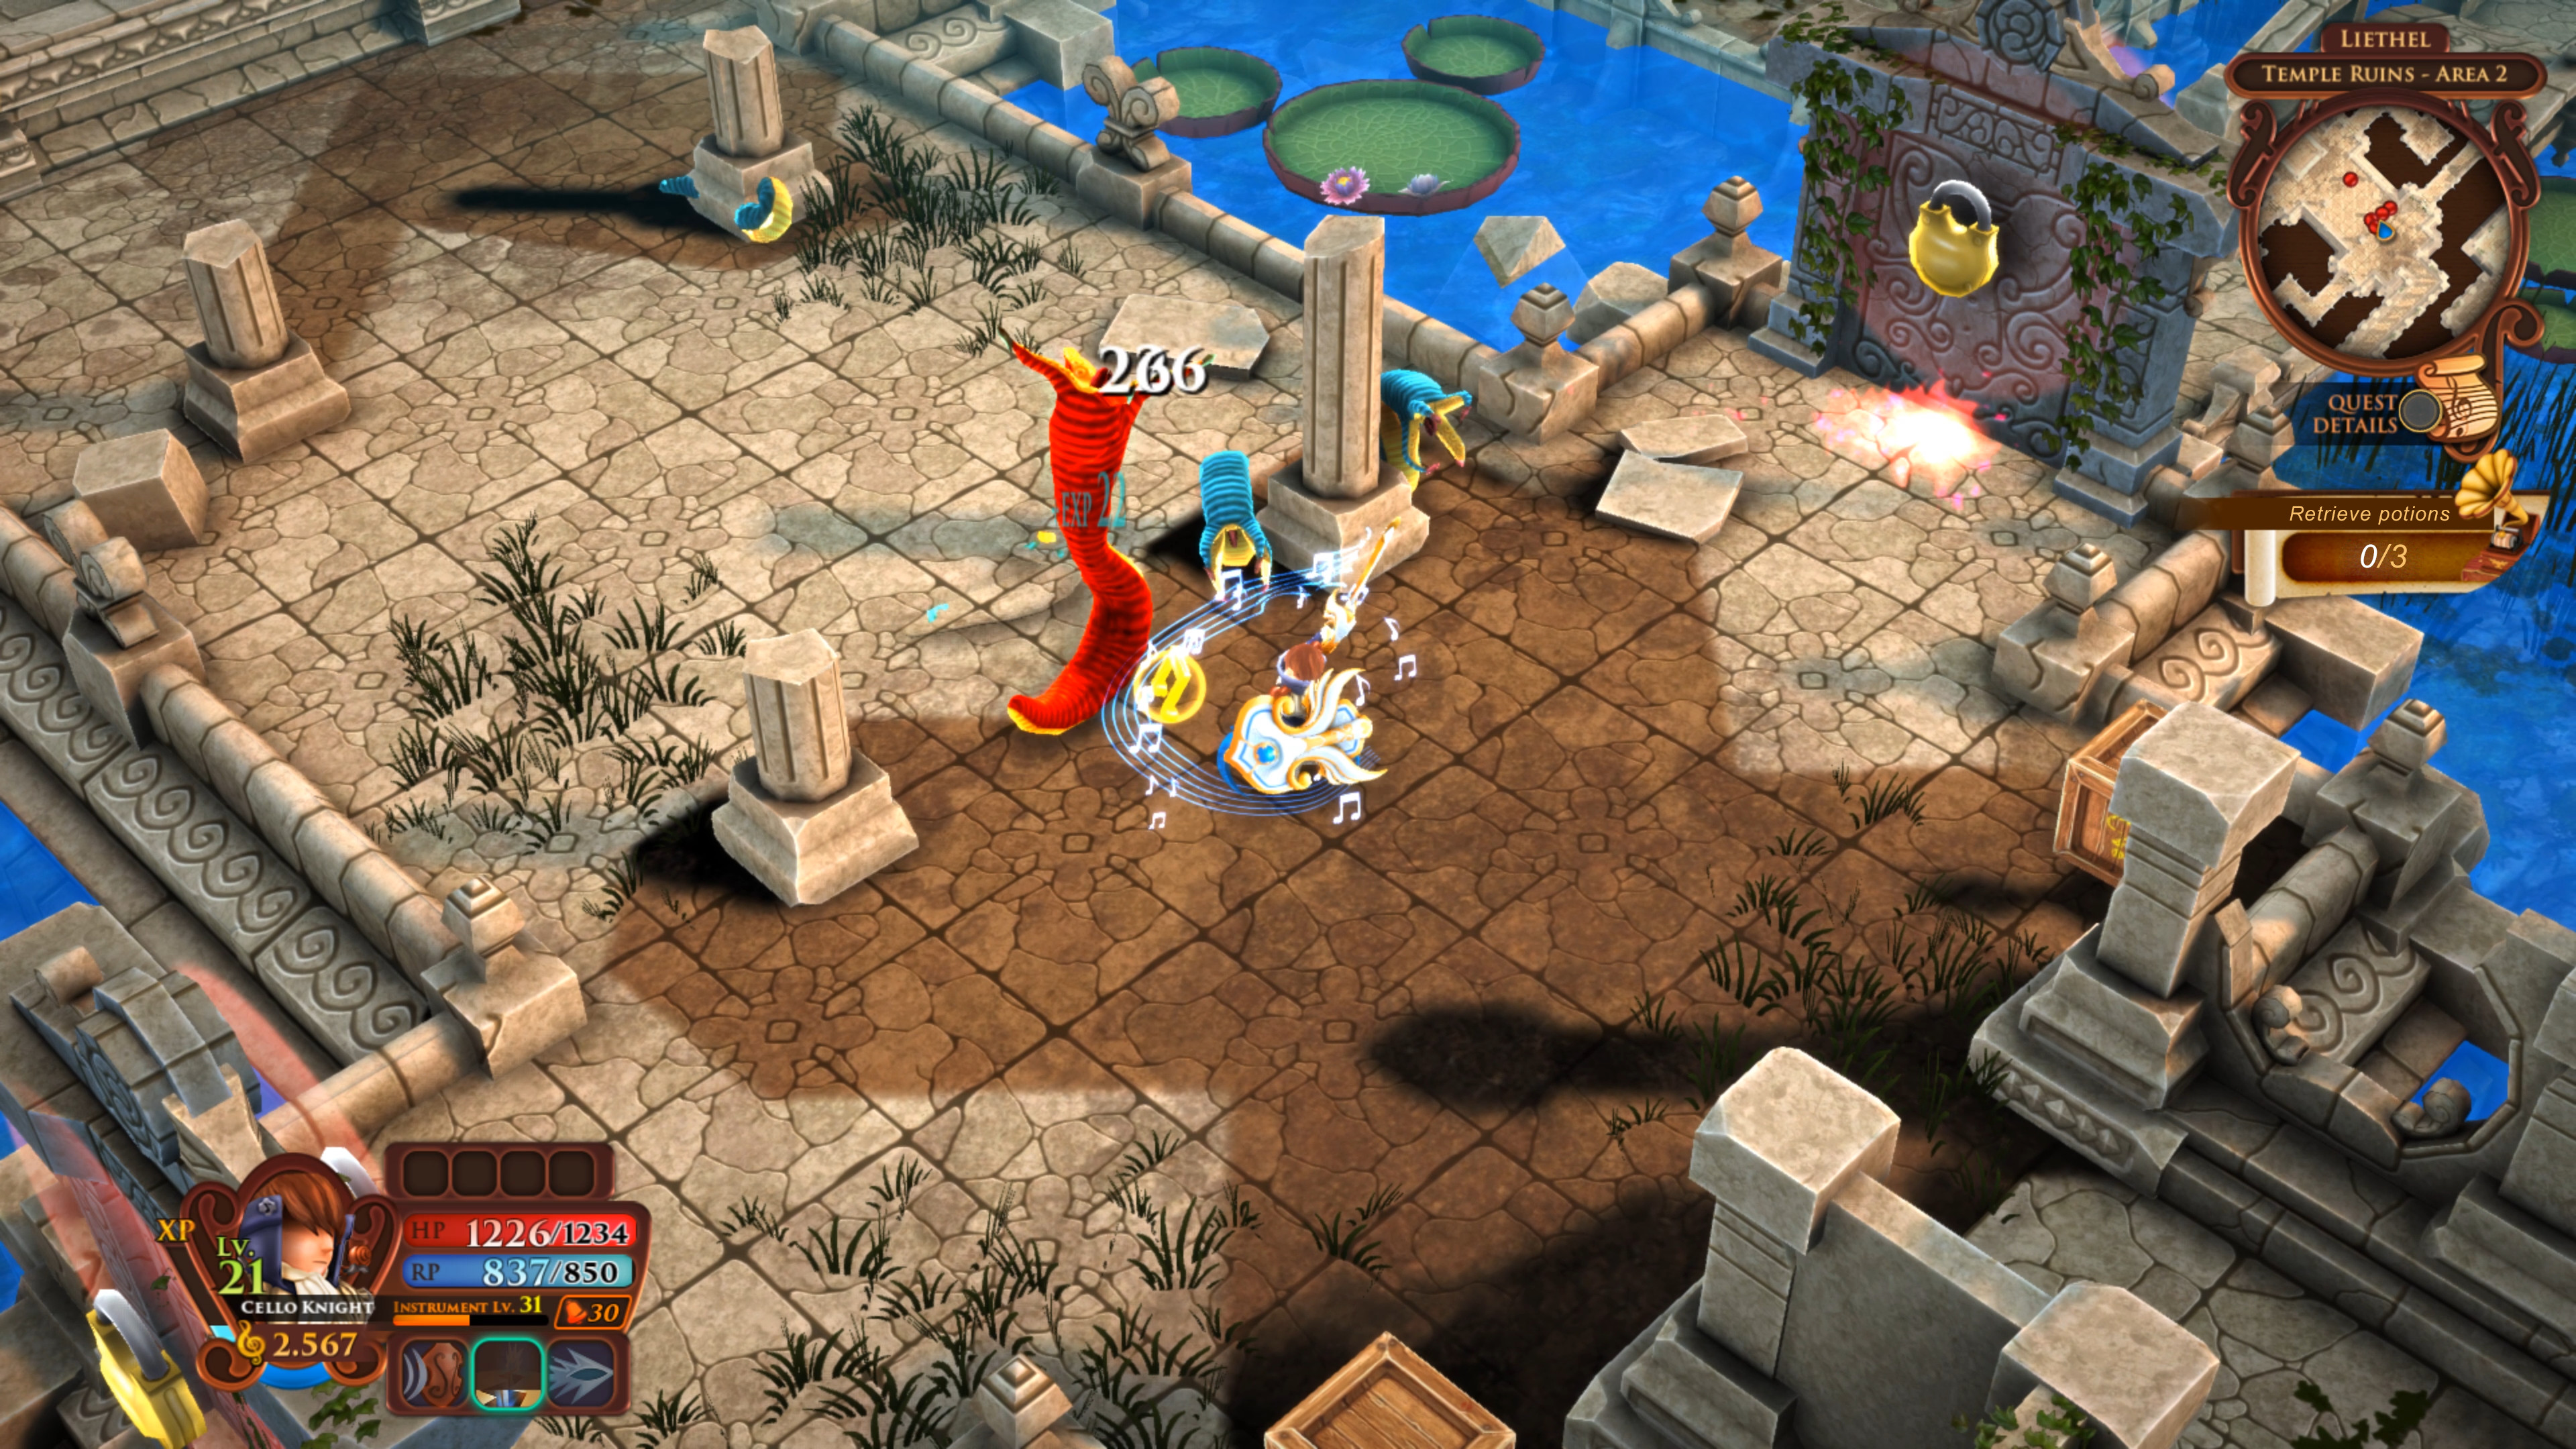 AereA screenshot